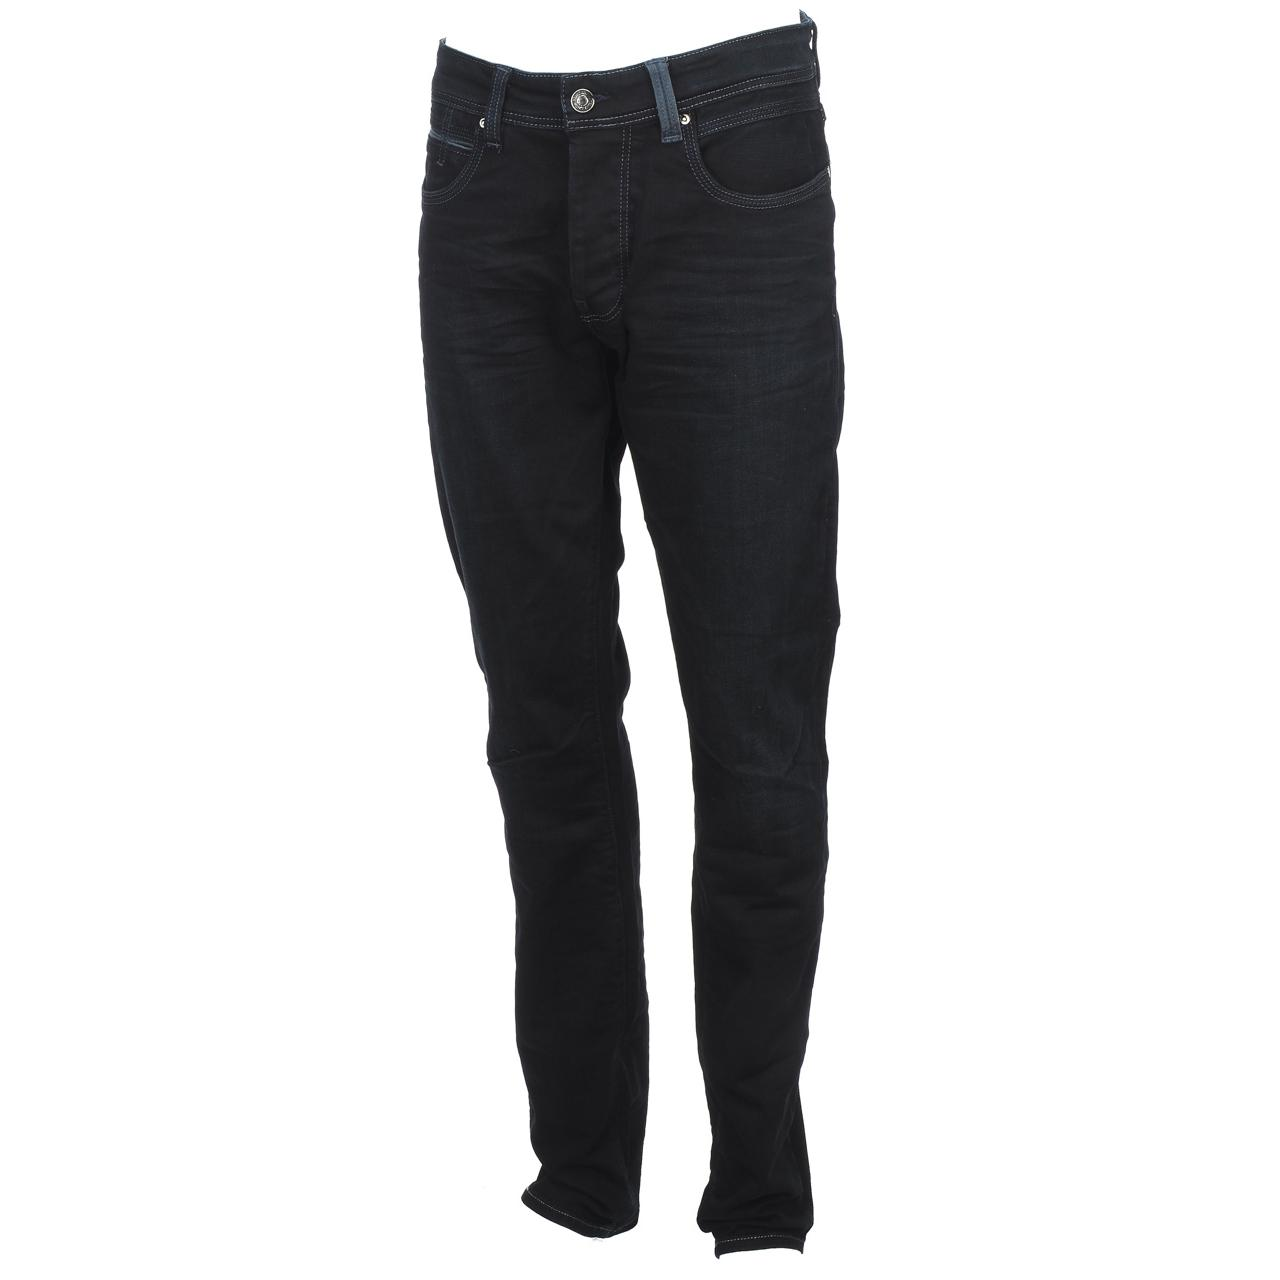 Trousers-Slim-Jeans-Teddy-smith-Rope-Reg-Comf-Usedoldencr-Blue-59500-New